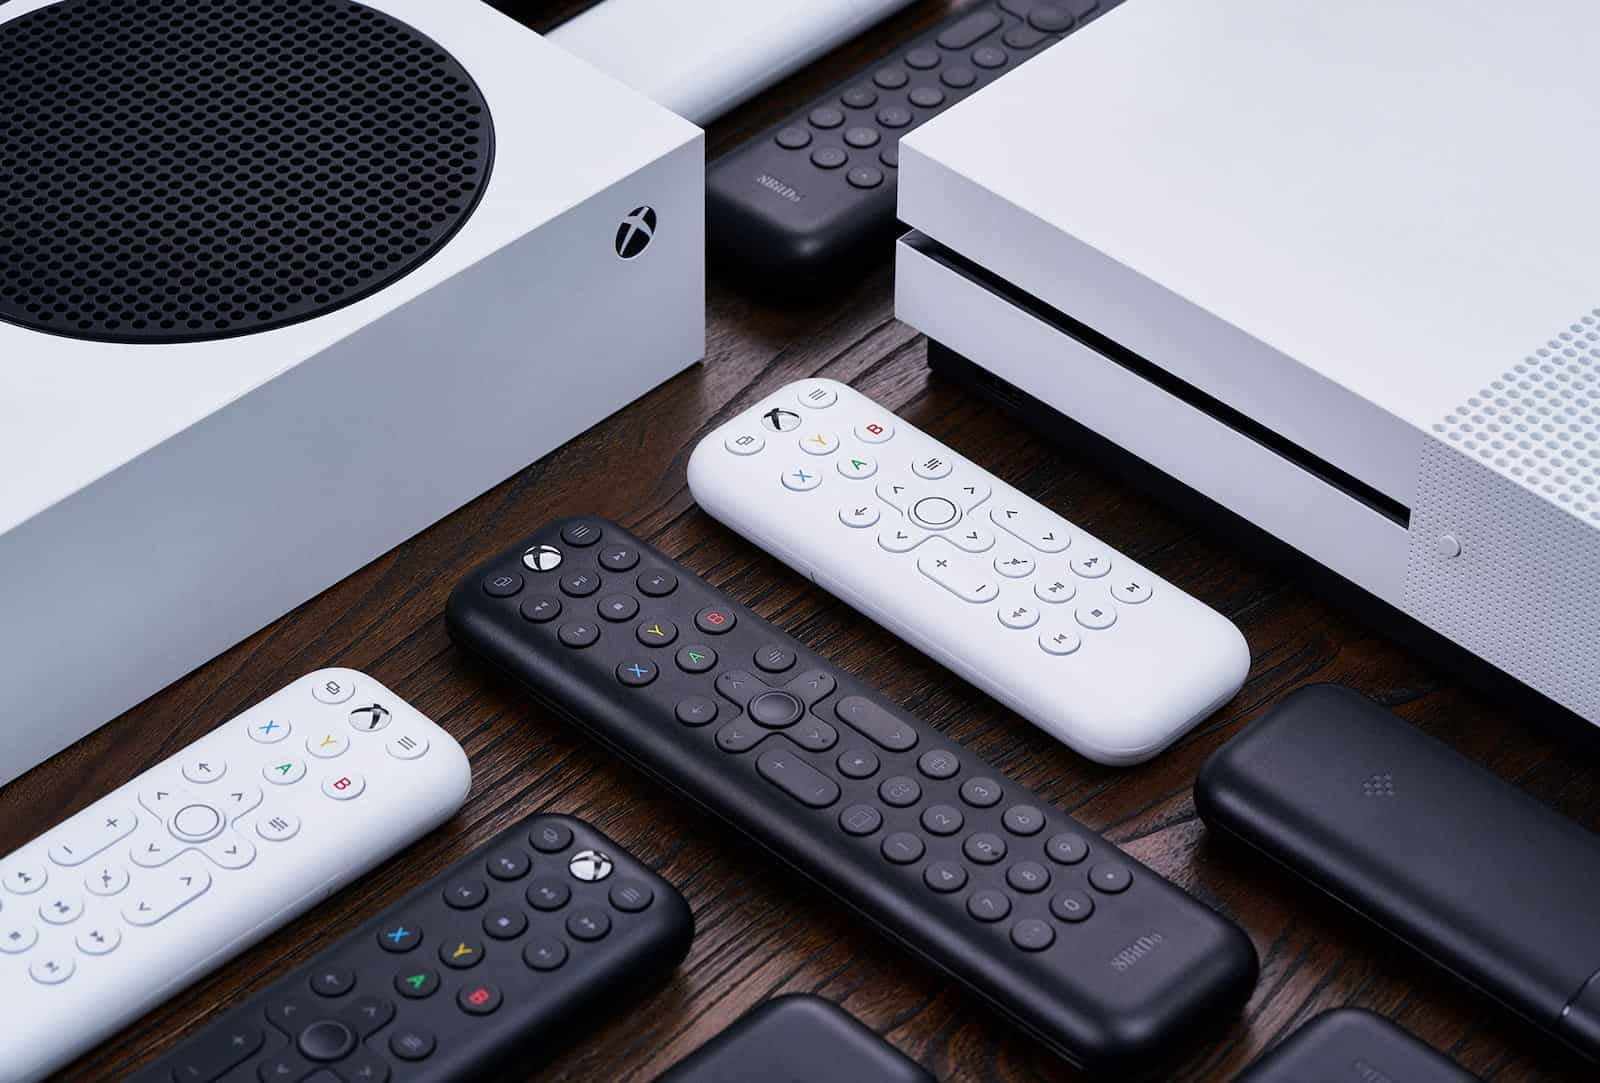 You're Gonna Want One Of These New 8BitDo Xbox Media Remotes